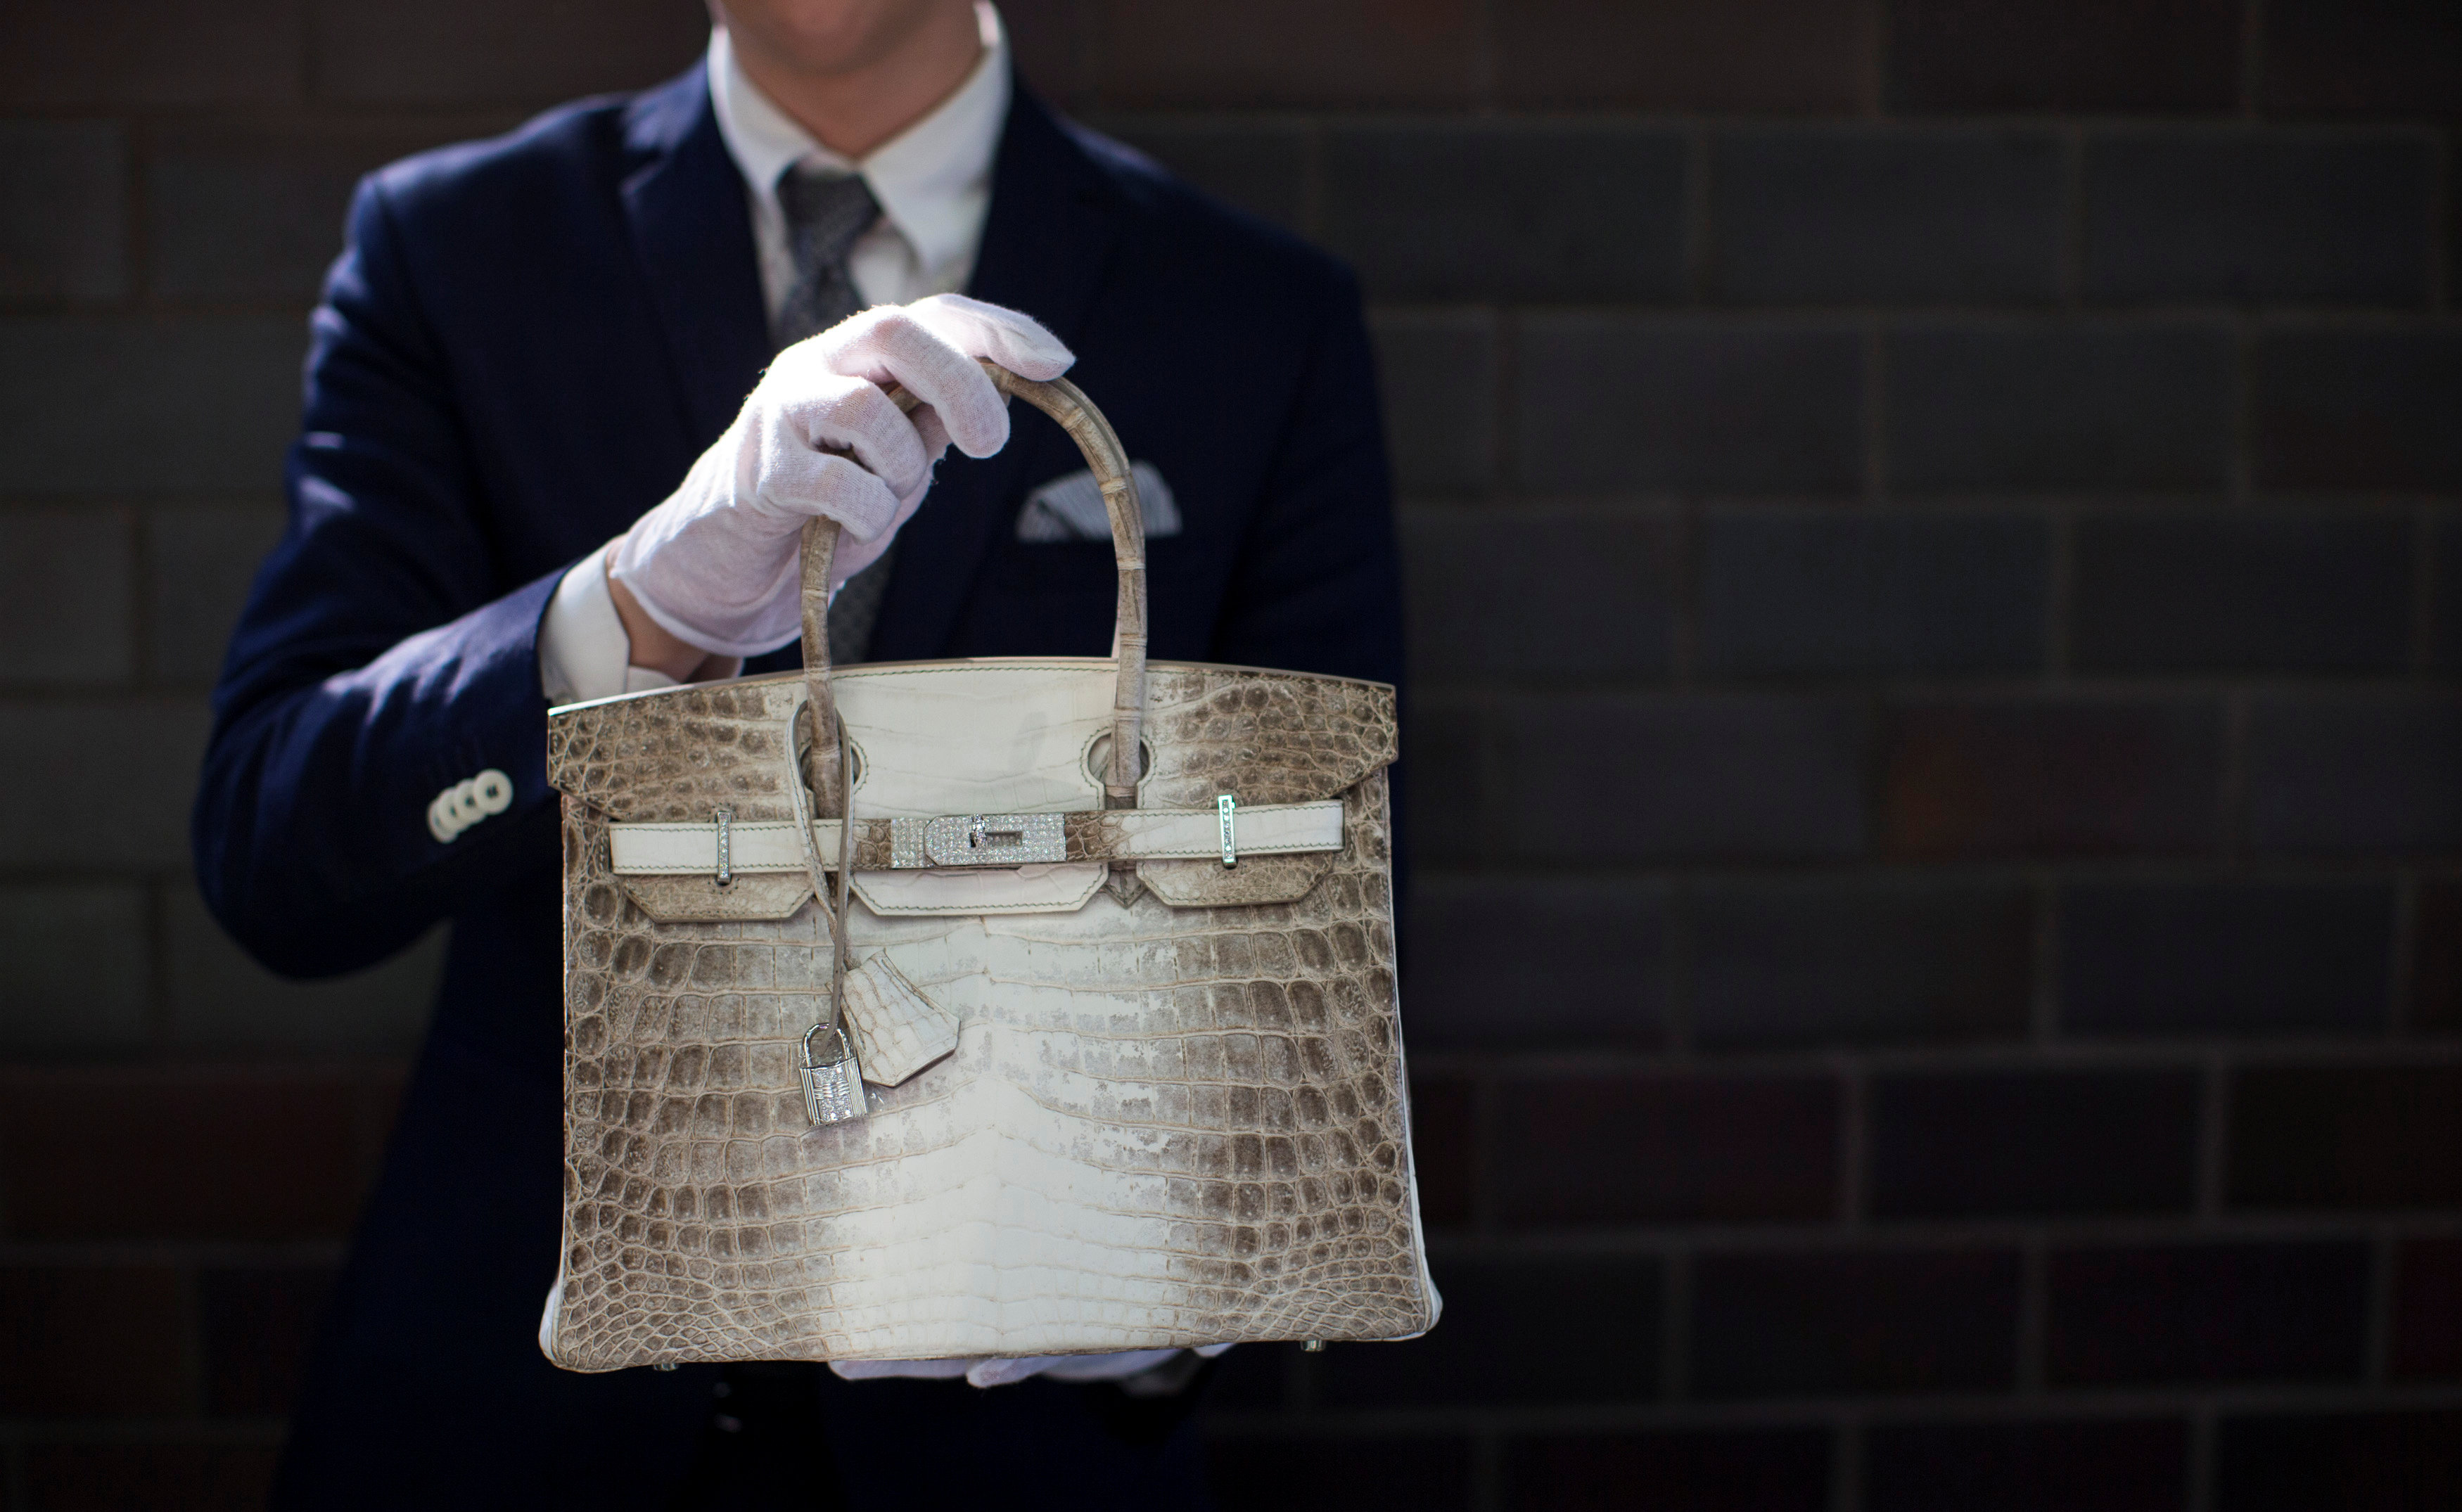 FILE PHOTO: An employee holds an Hermes diamond and Himalayan Nilo Crocodile Birkin handbag at Heritage Auctions offices in Beverly Hills, California